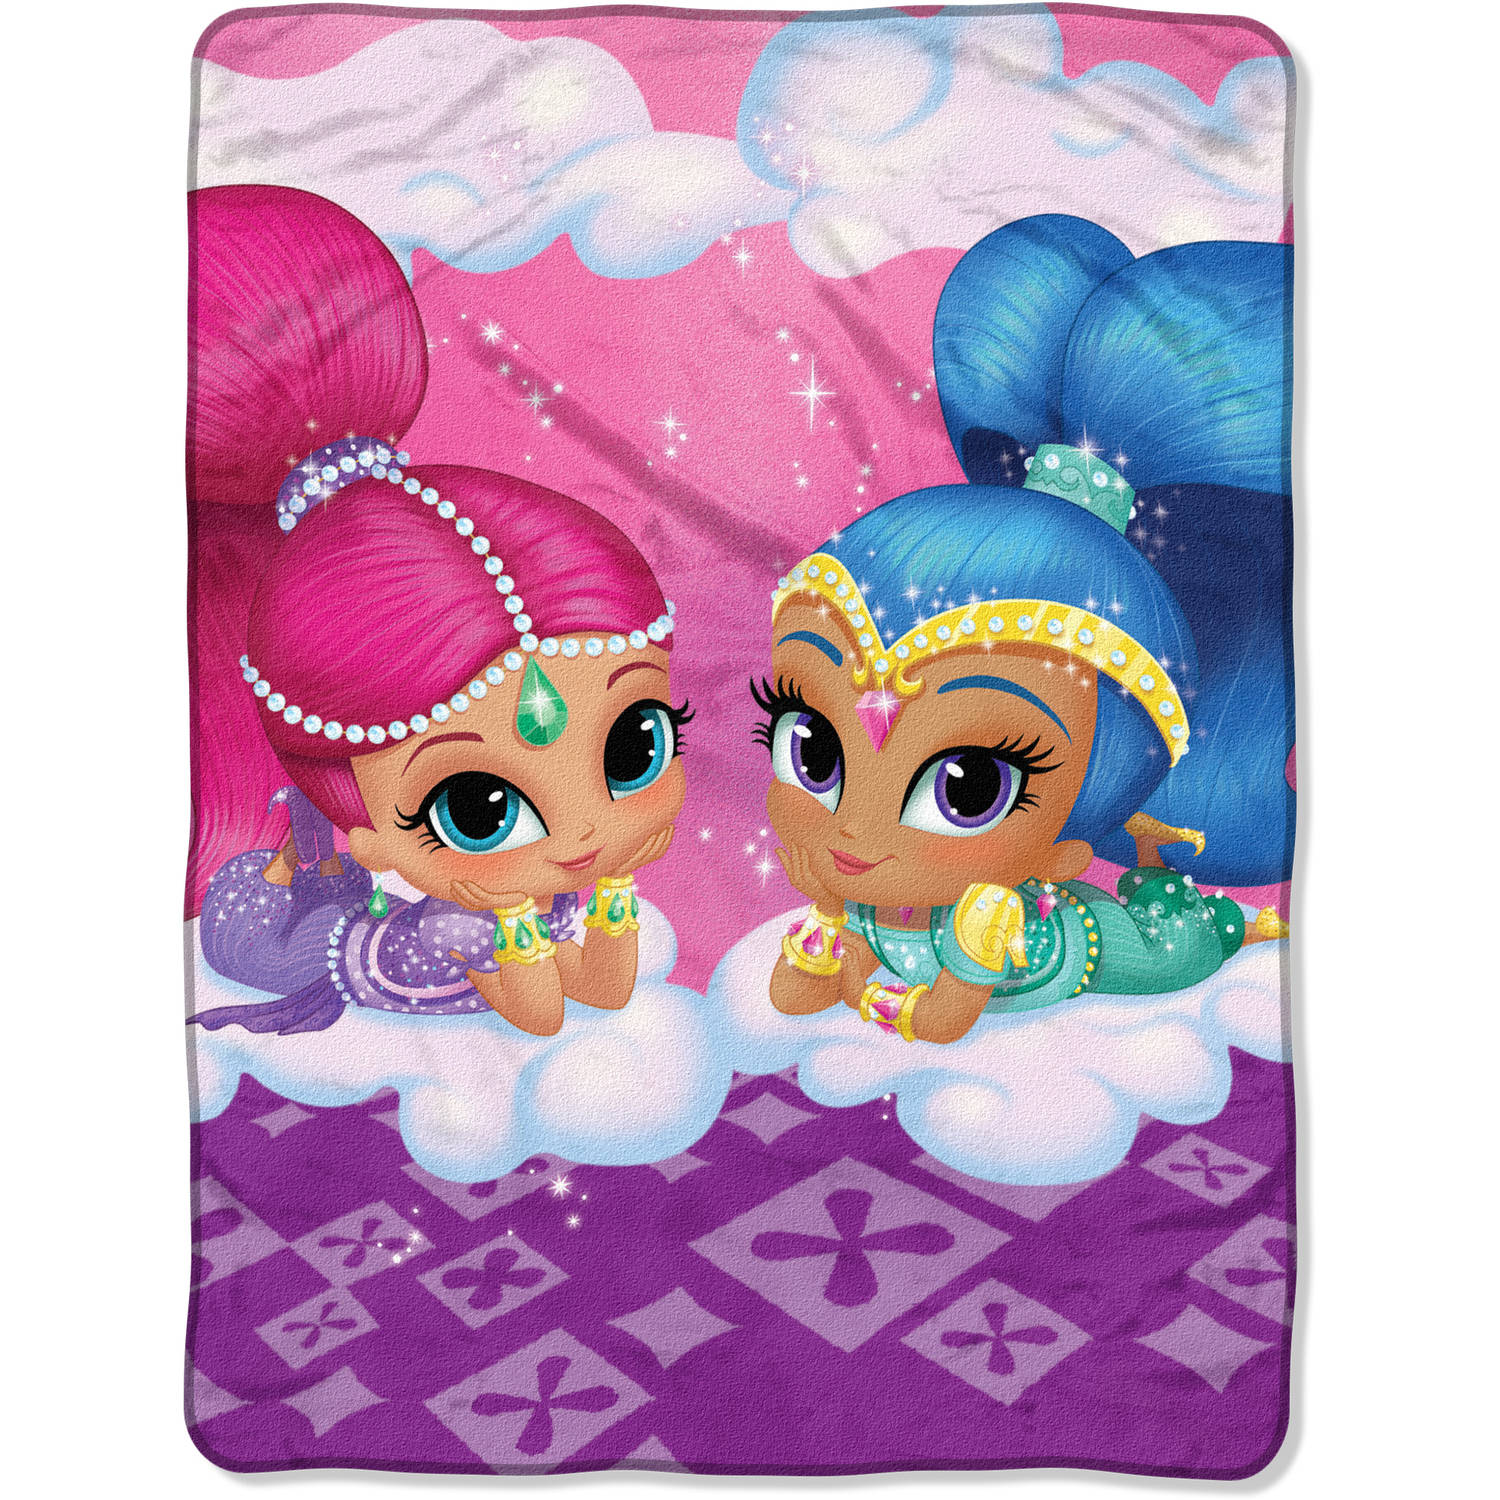 "Nickelodeon's Shimmer and Shine Cloud Crusin 46"" x 60"" Micro Raschel Throw"